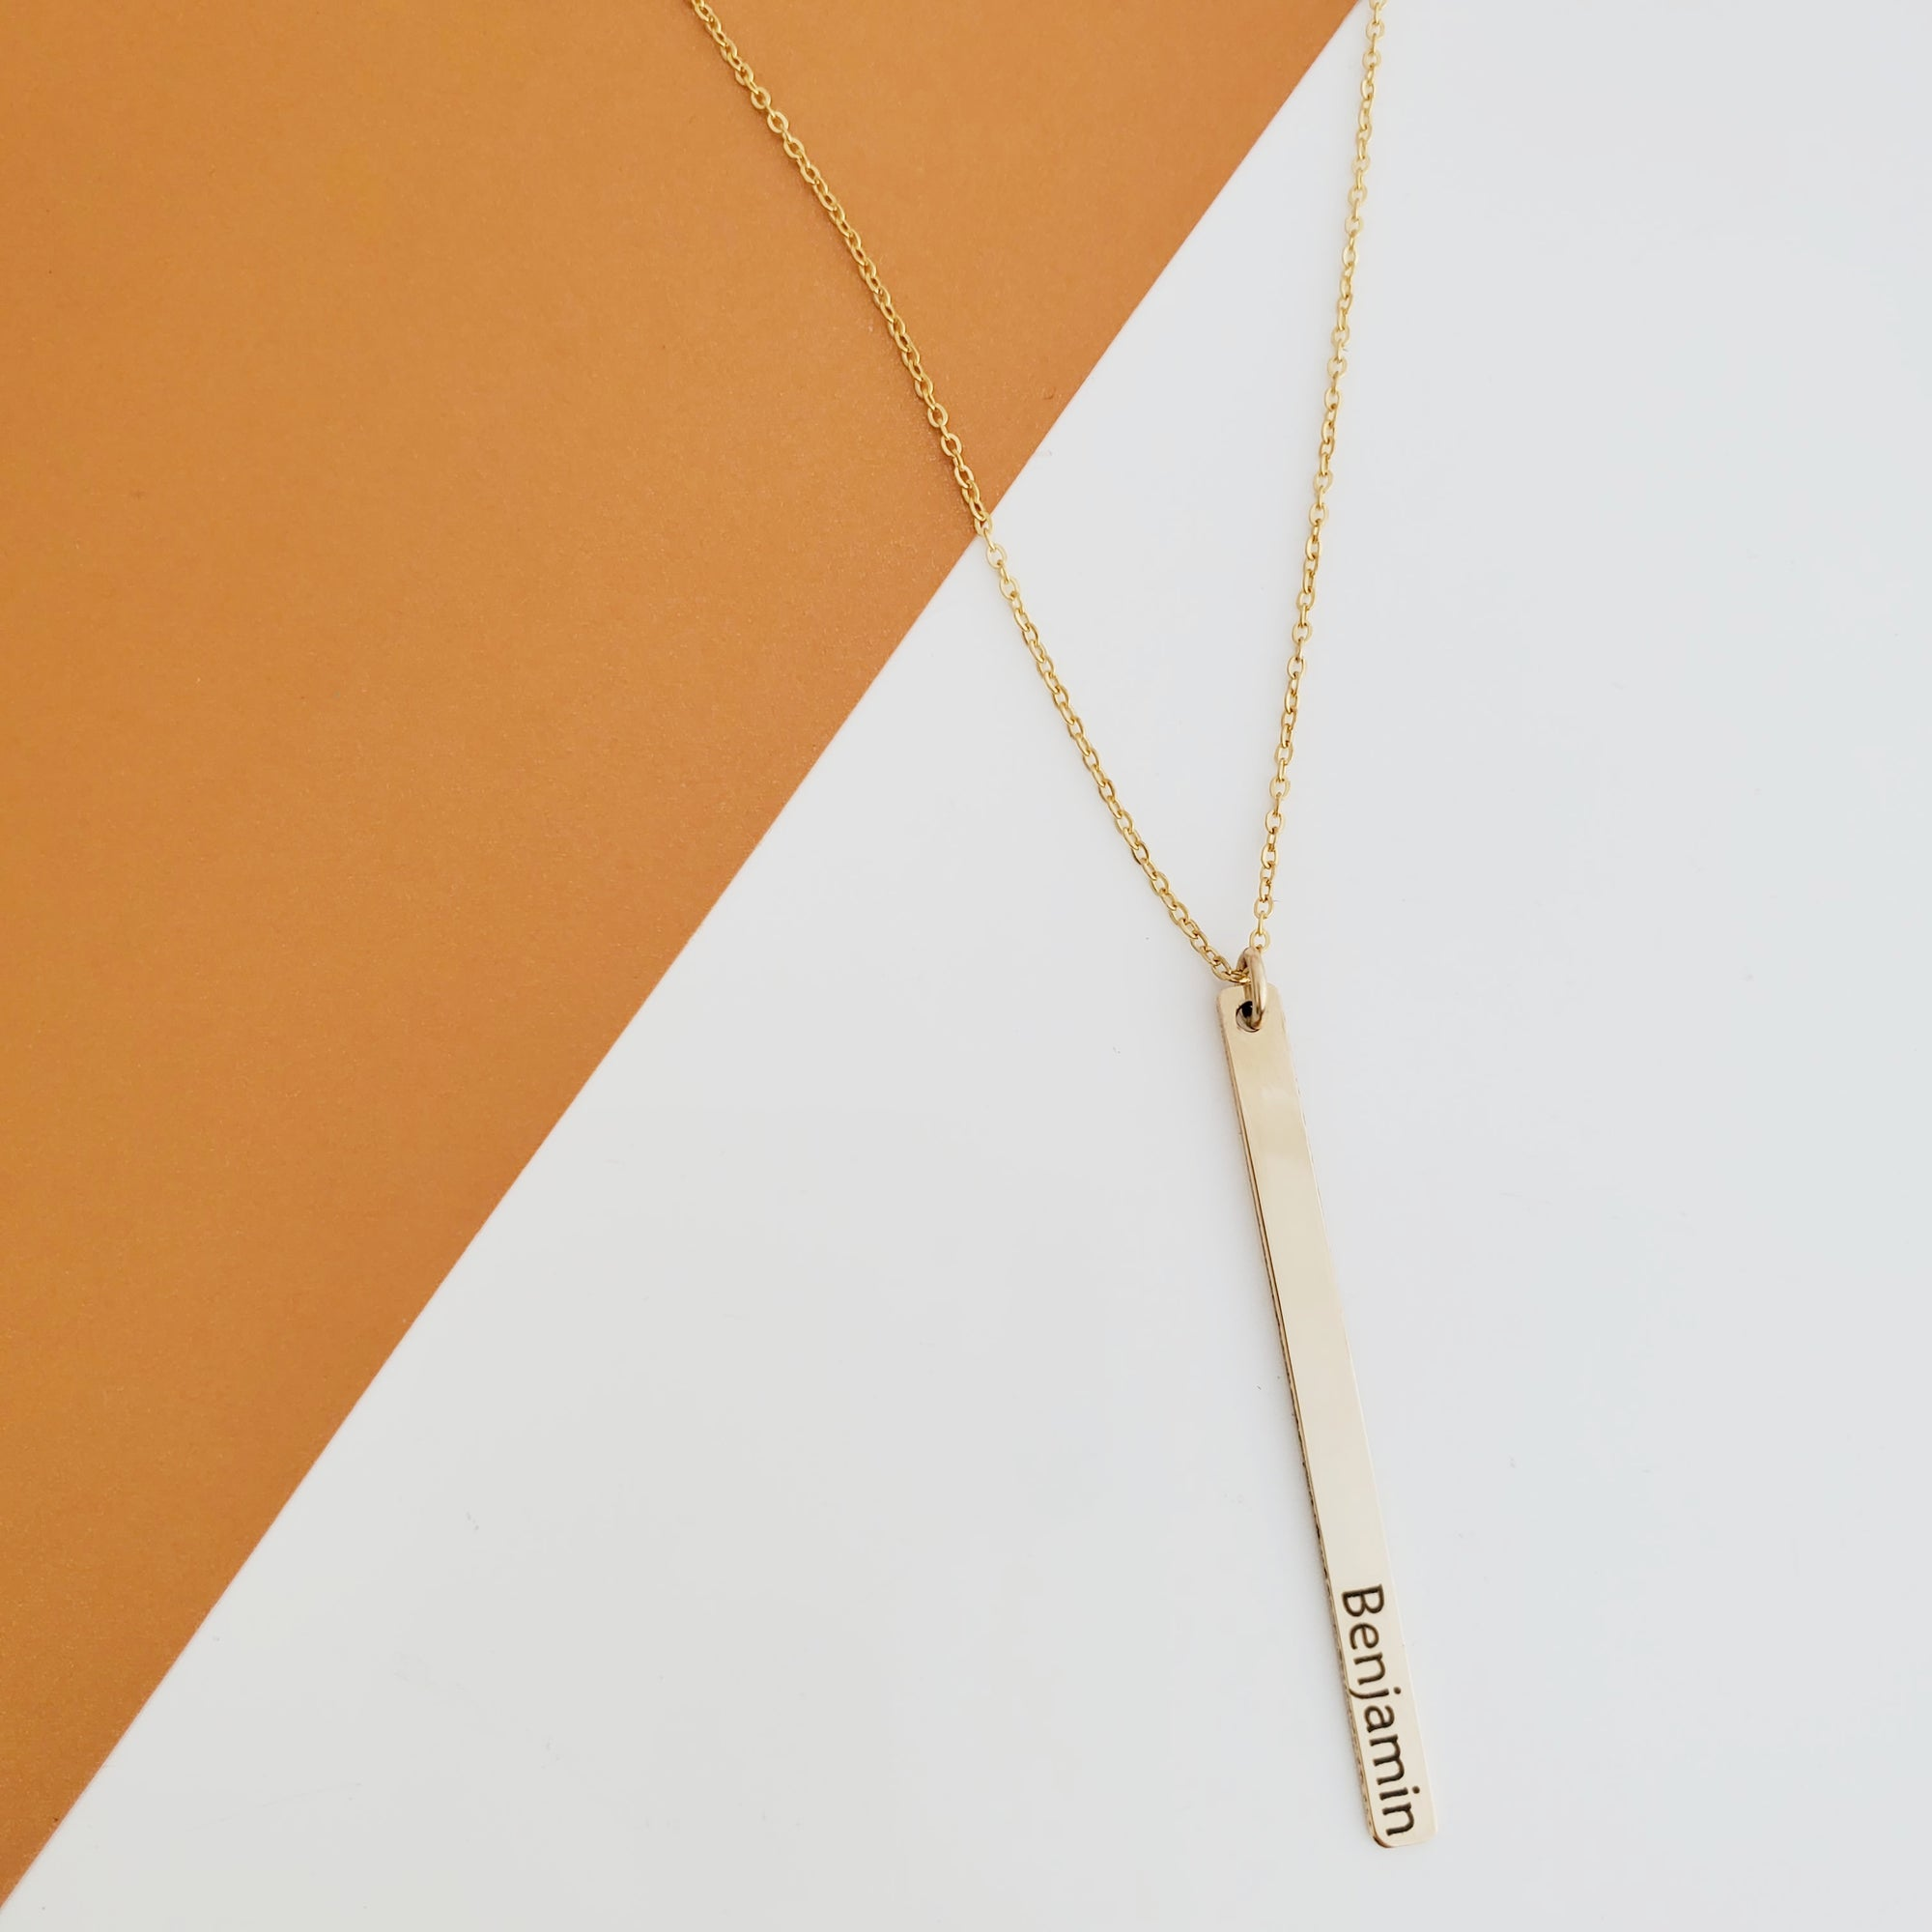 Cora Necklace (Personalizable)